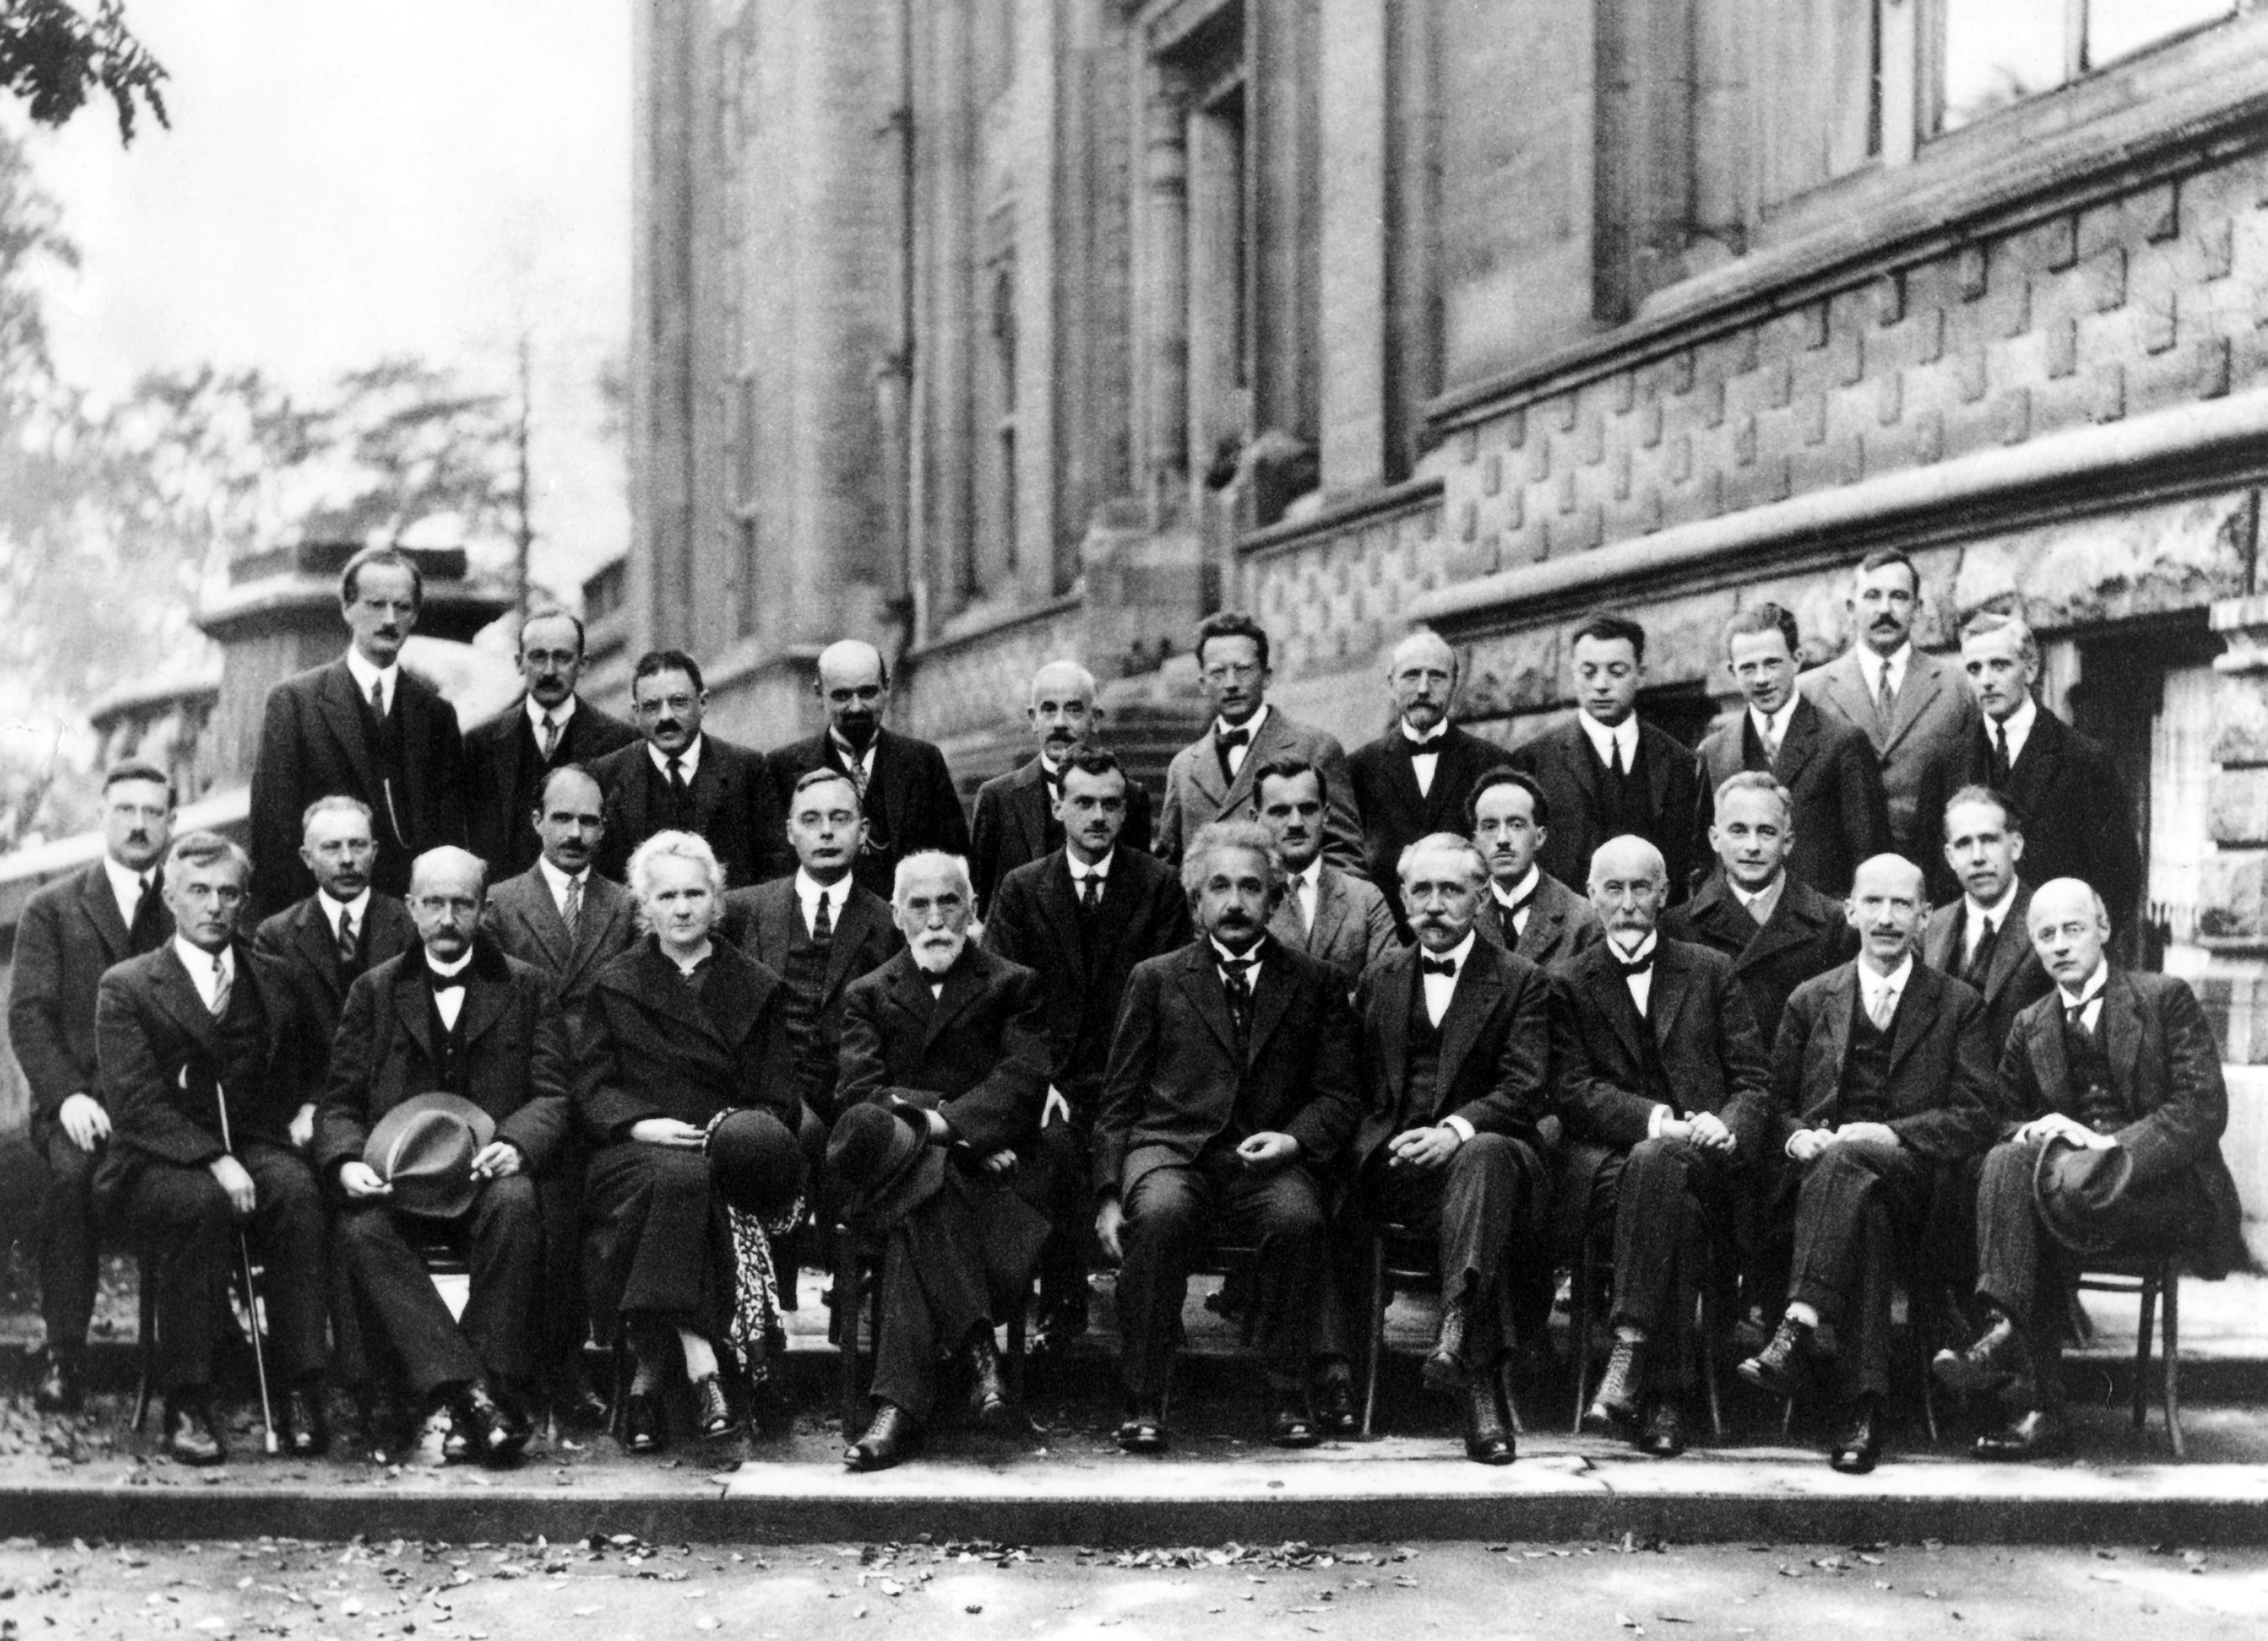 Physicists-Solvay congress (1927)